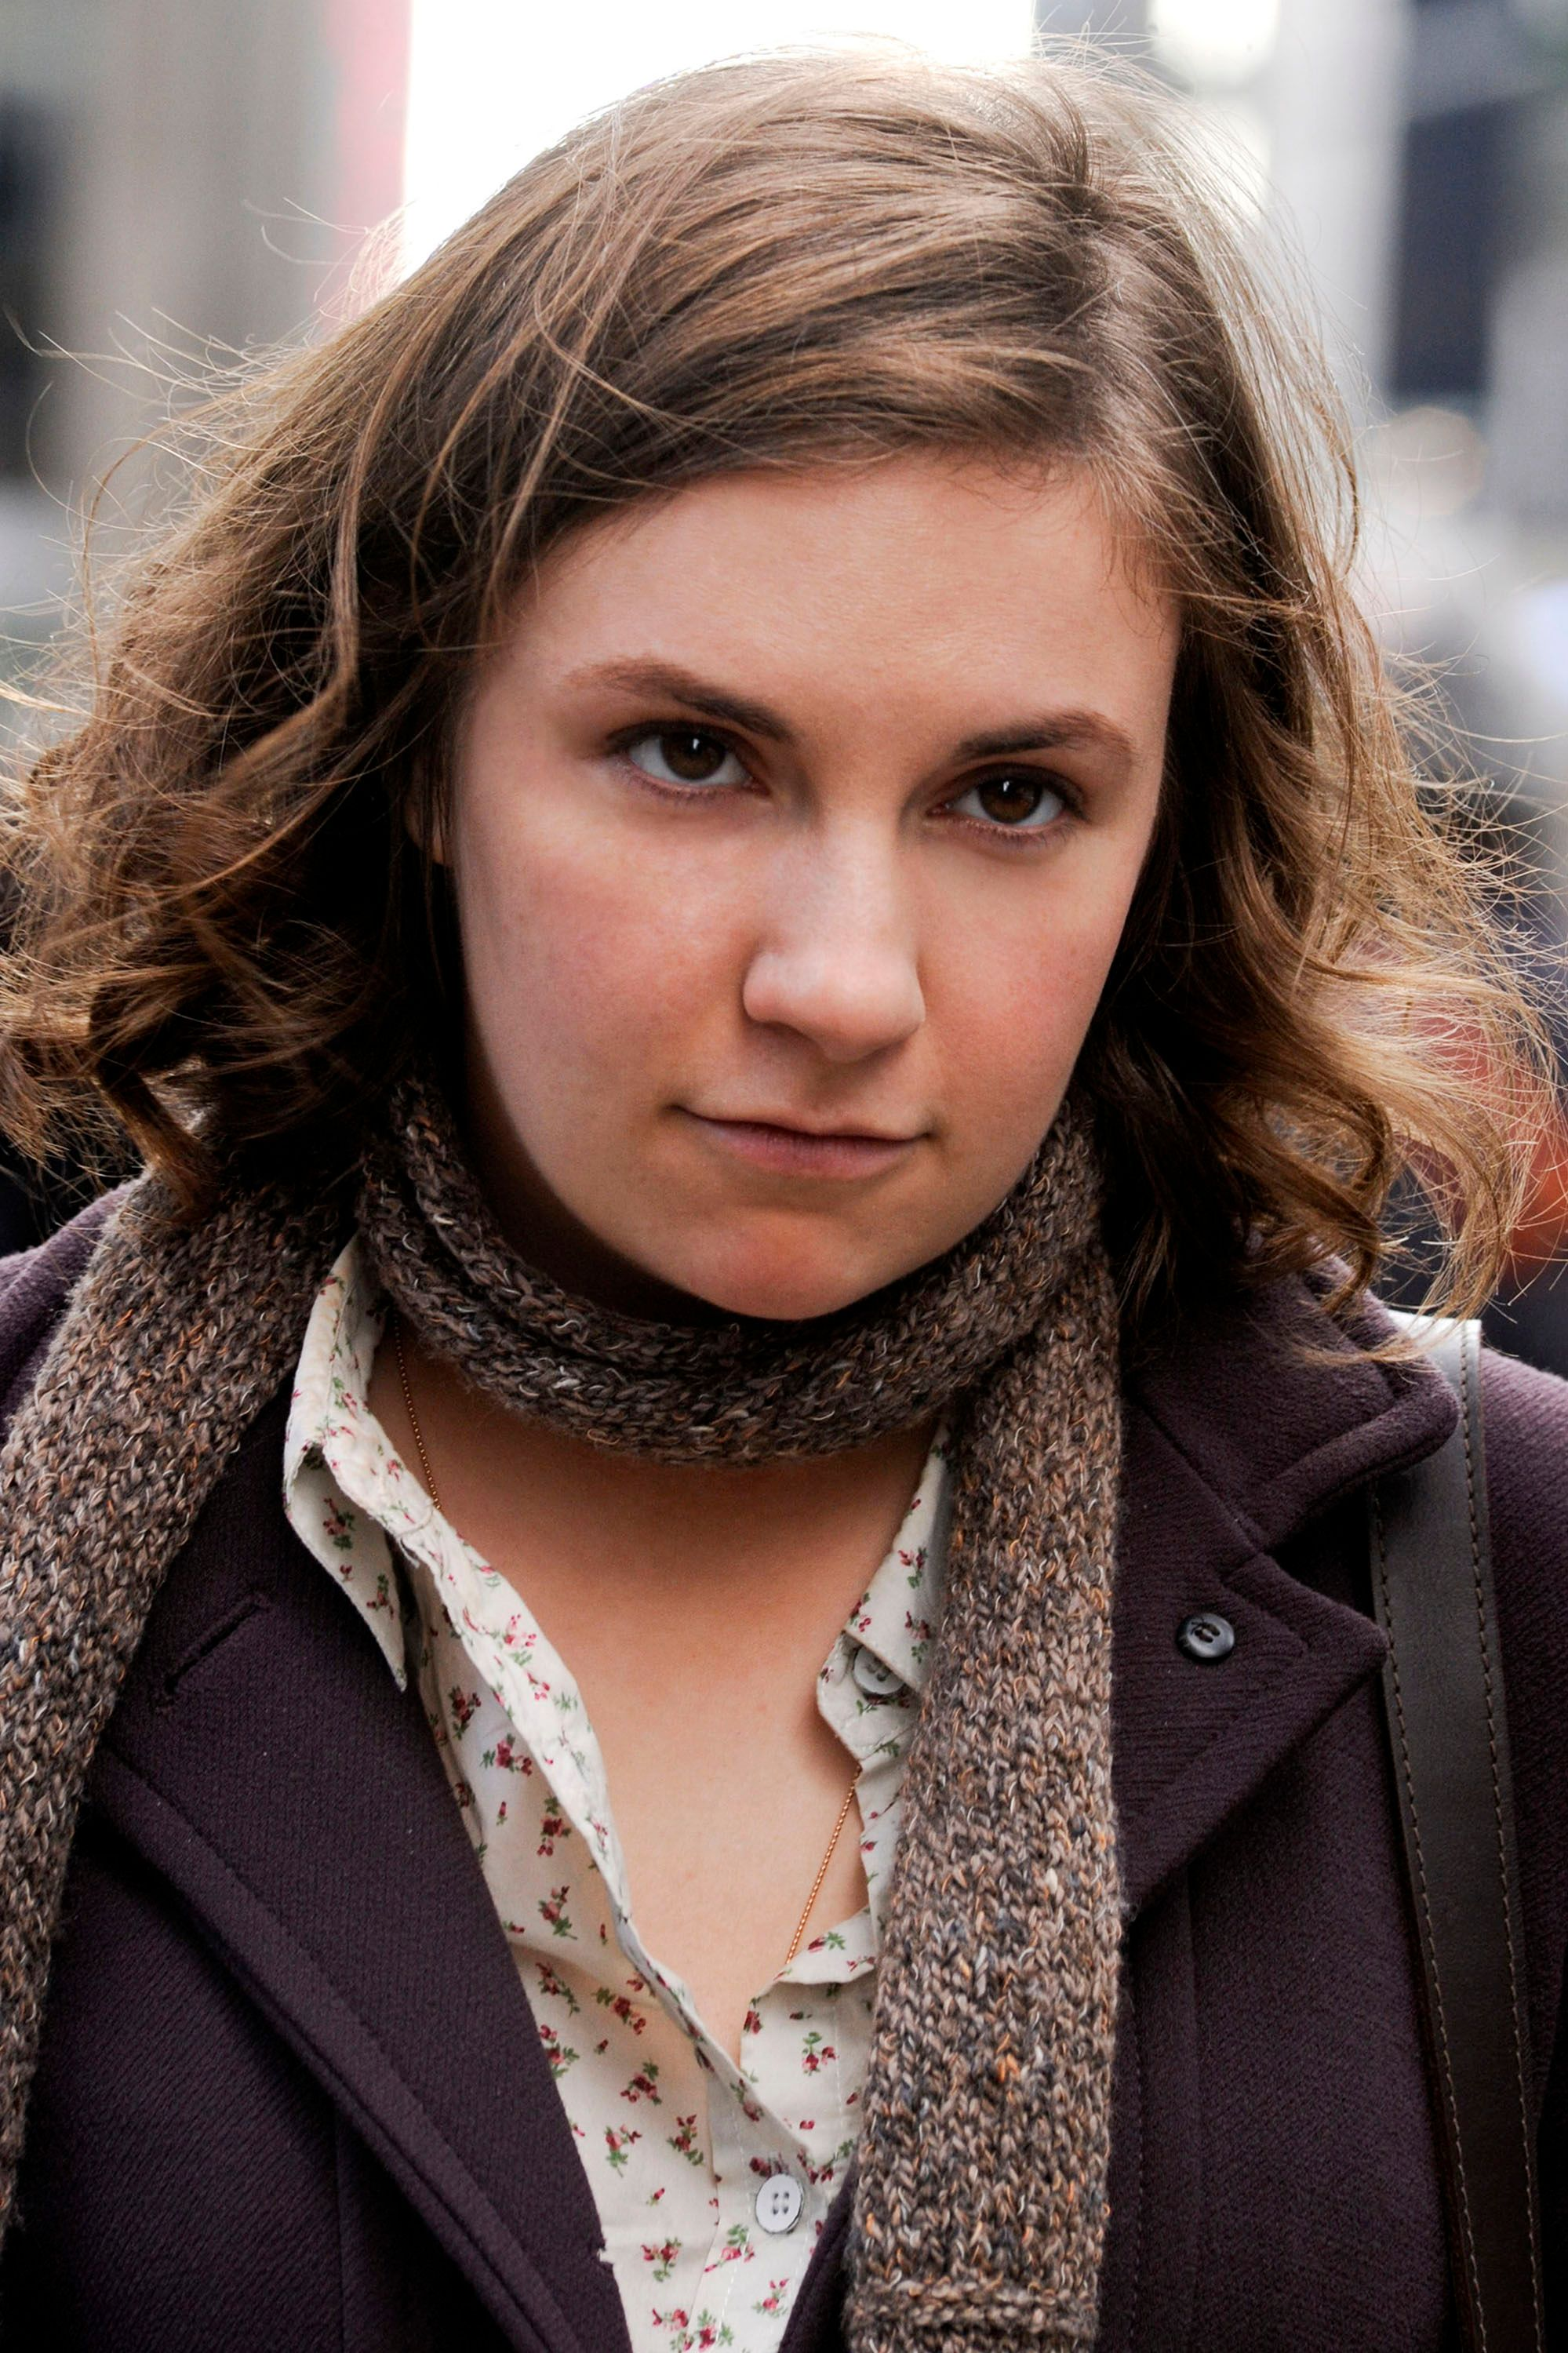 lena girls Lena dunham, writer: tiny furniture new yorker lena dunham is the daughter of a painter, carroll dunham and laurie simmons, a designer and photographer dunham was educated at oberlin college, ohio, graduating with a creative writing degree.